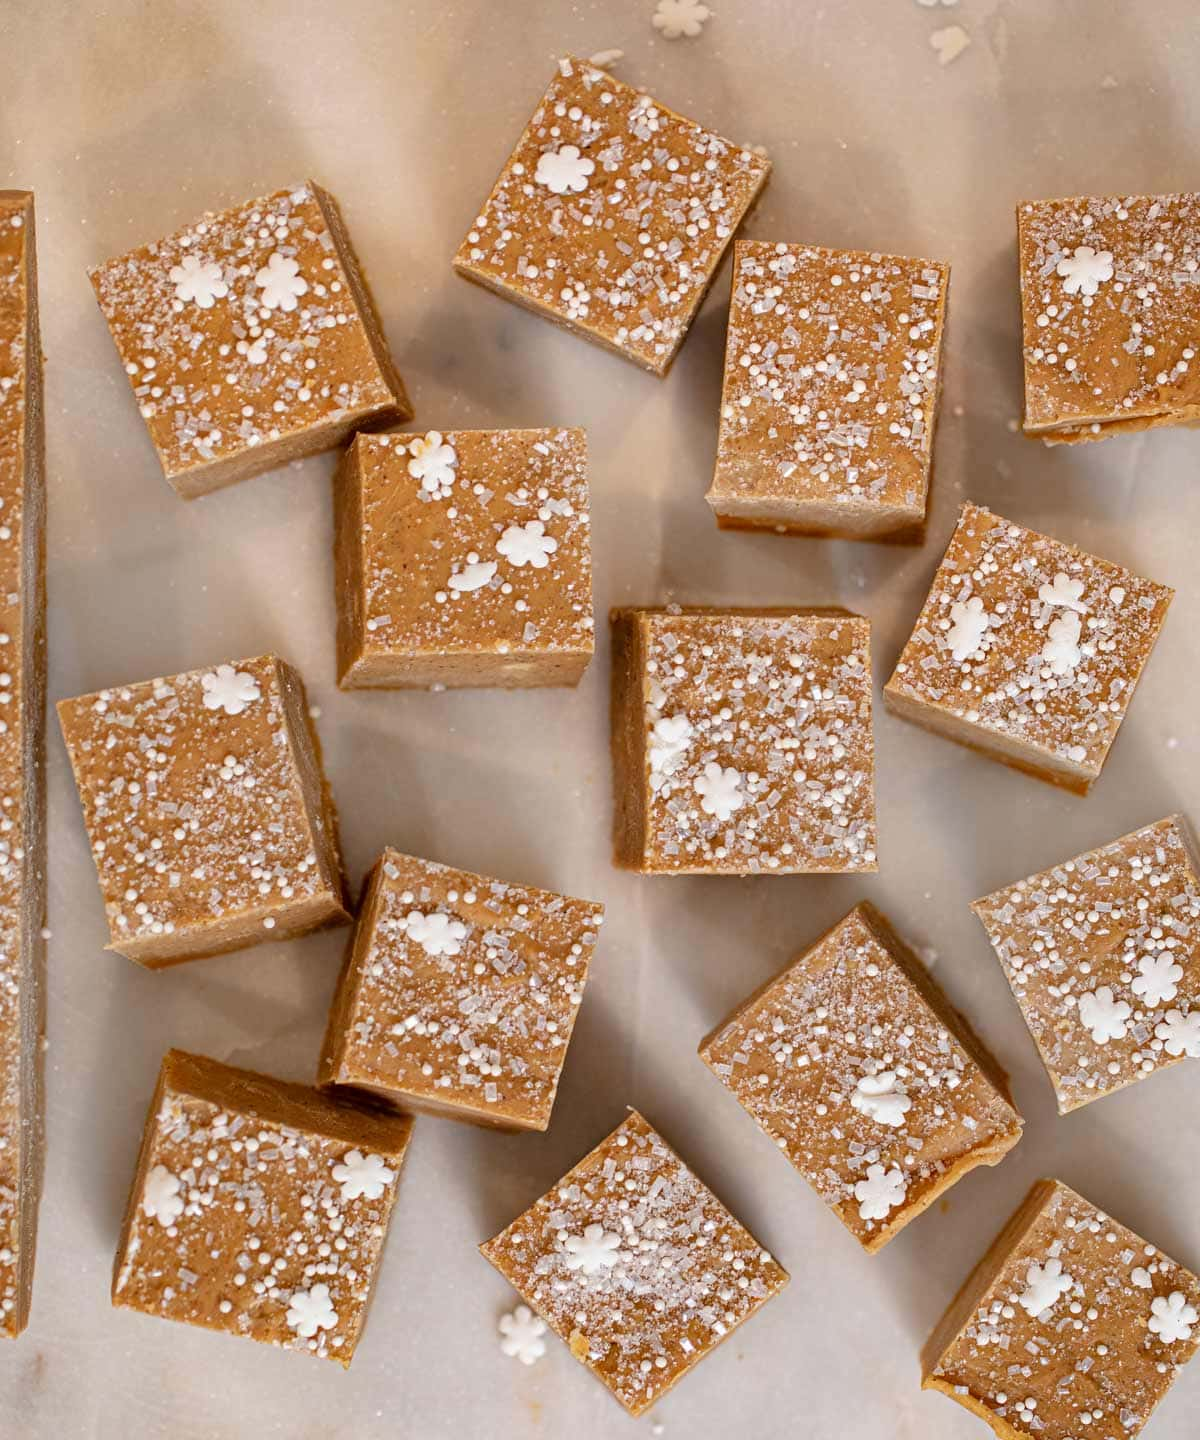 Gingerbread Fudge bites on cutting board